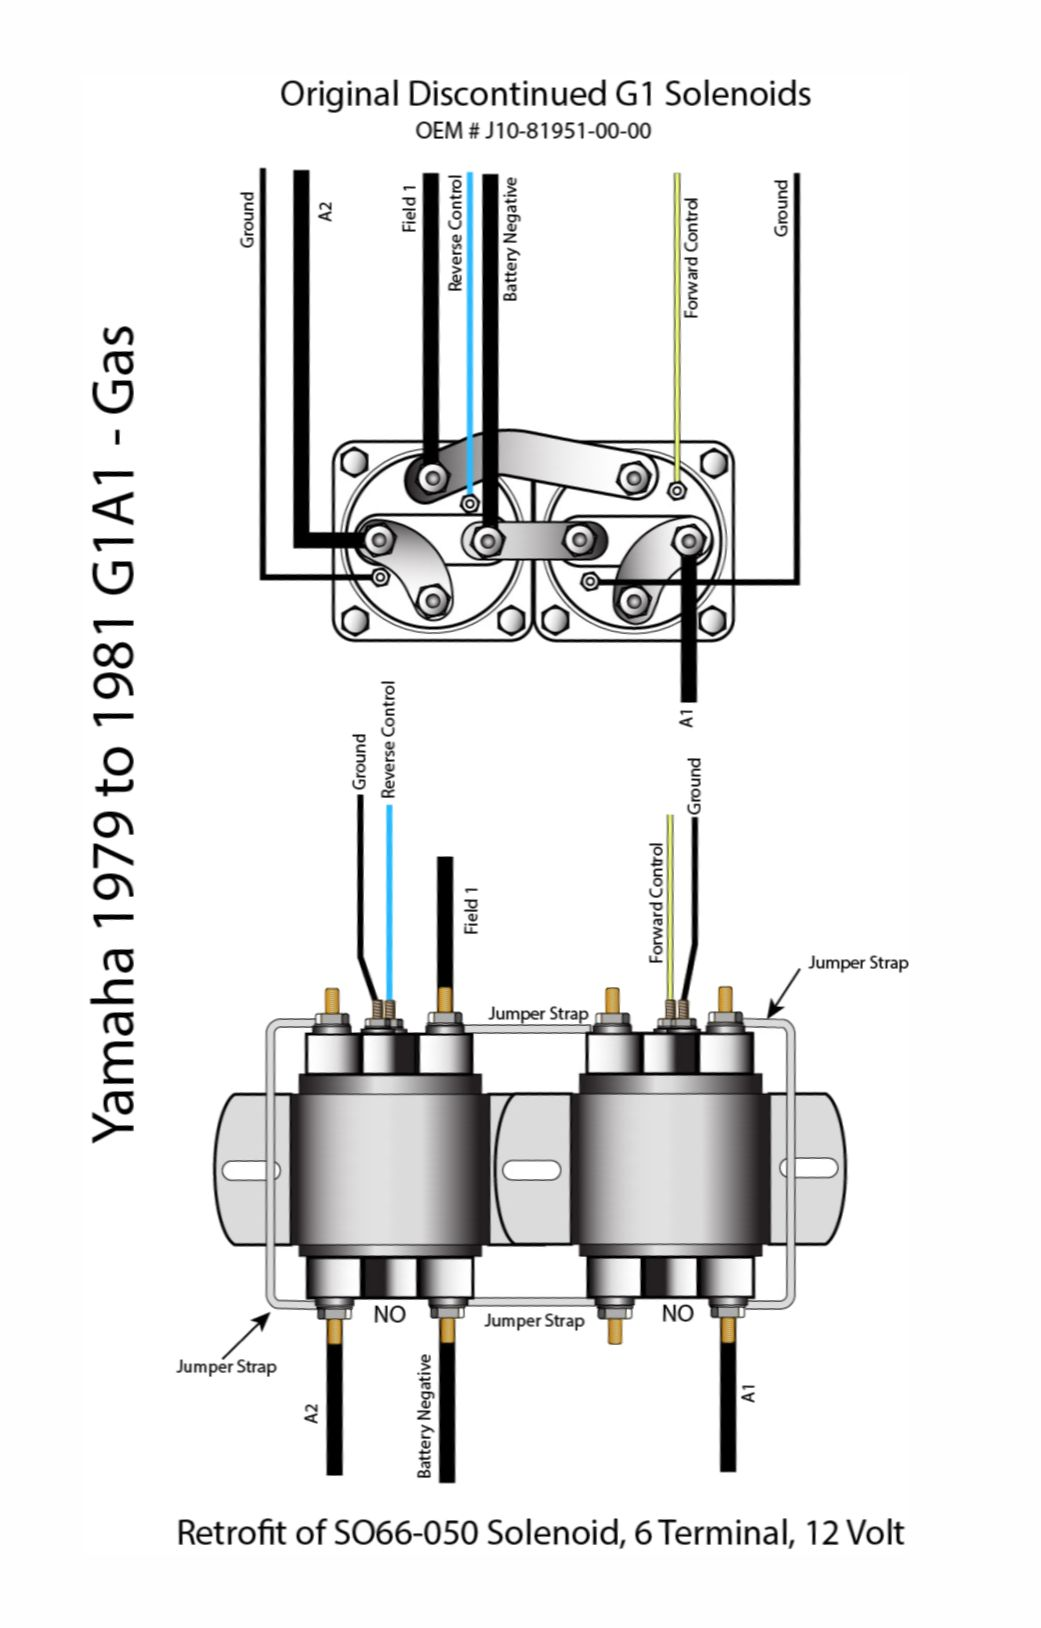 hight resolution of wiring diagrams wiring to retrofit 1979 to 1981 gas g1 solenoids